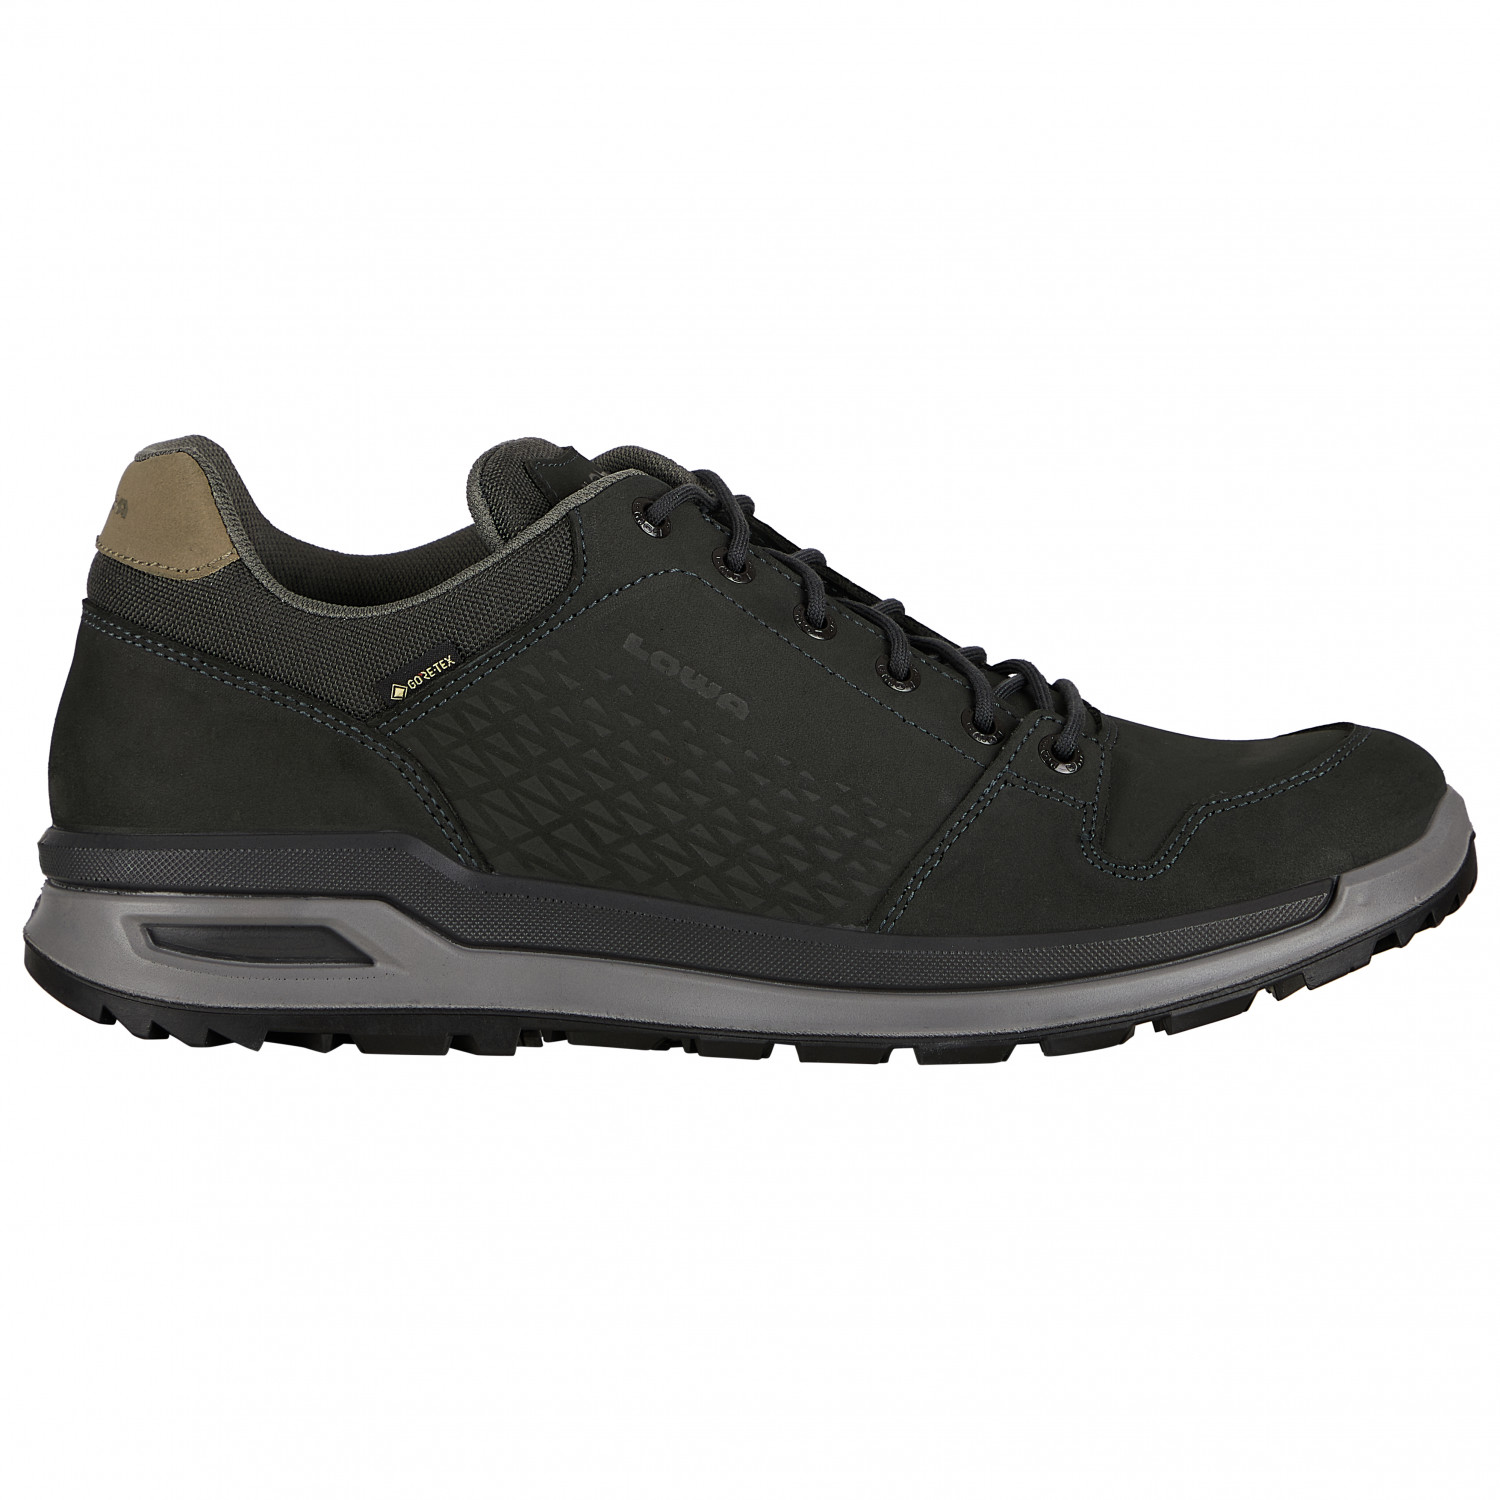 73d4567a120 Lowa Locarno Gtx Lo - Chaussures multisports Homme